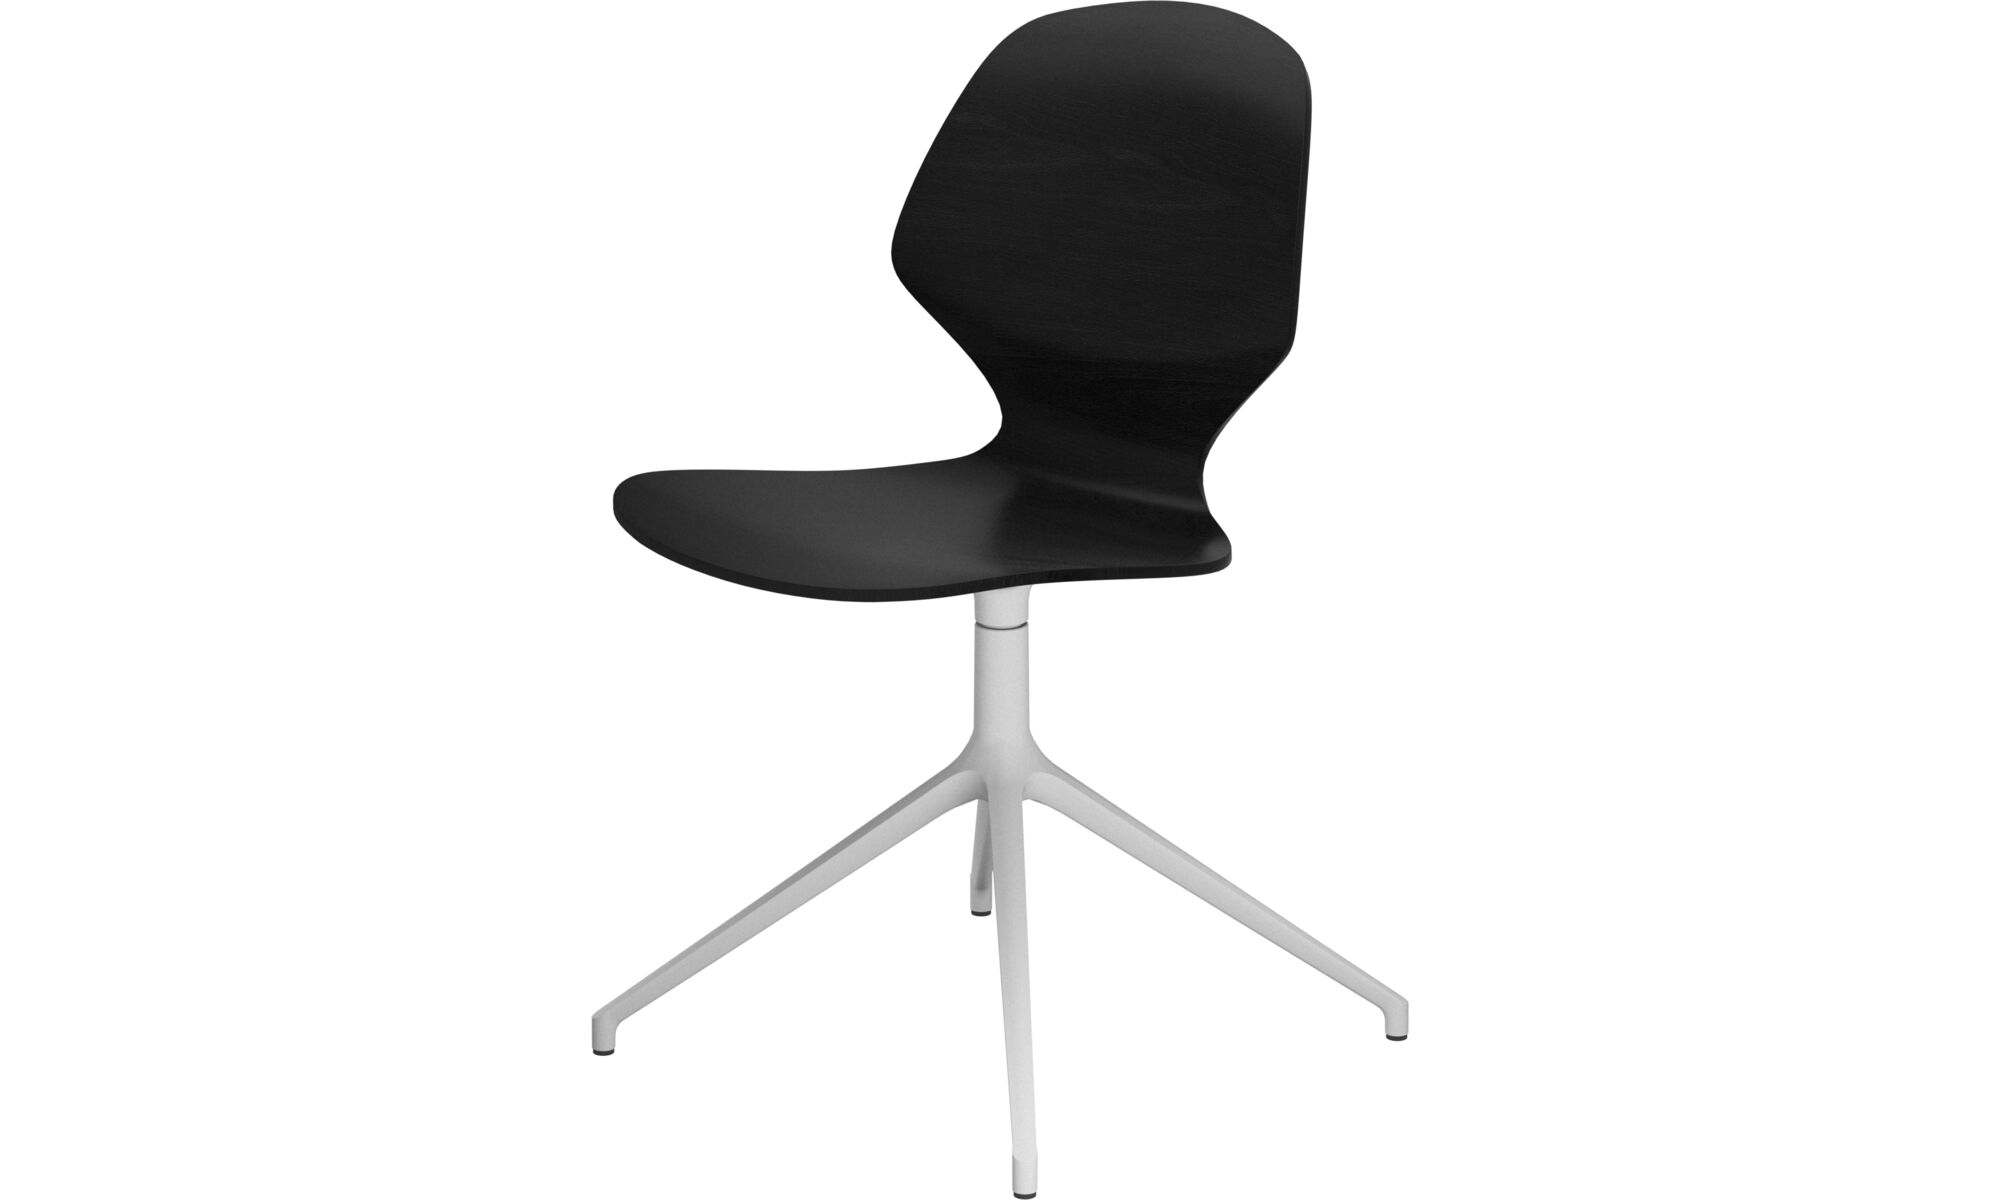 Dining chairs - Florence chair with swivel function - Black - Lacquered